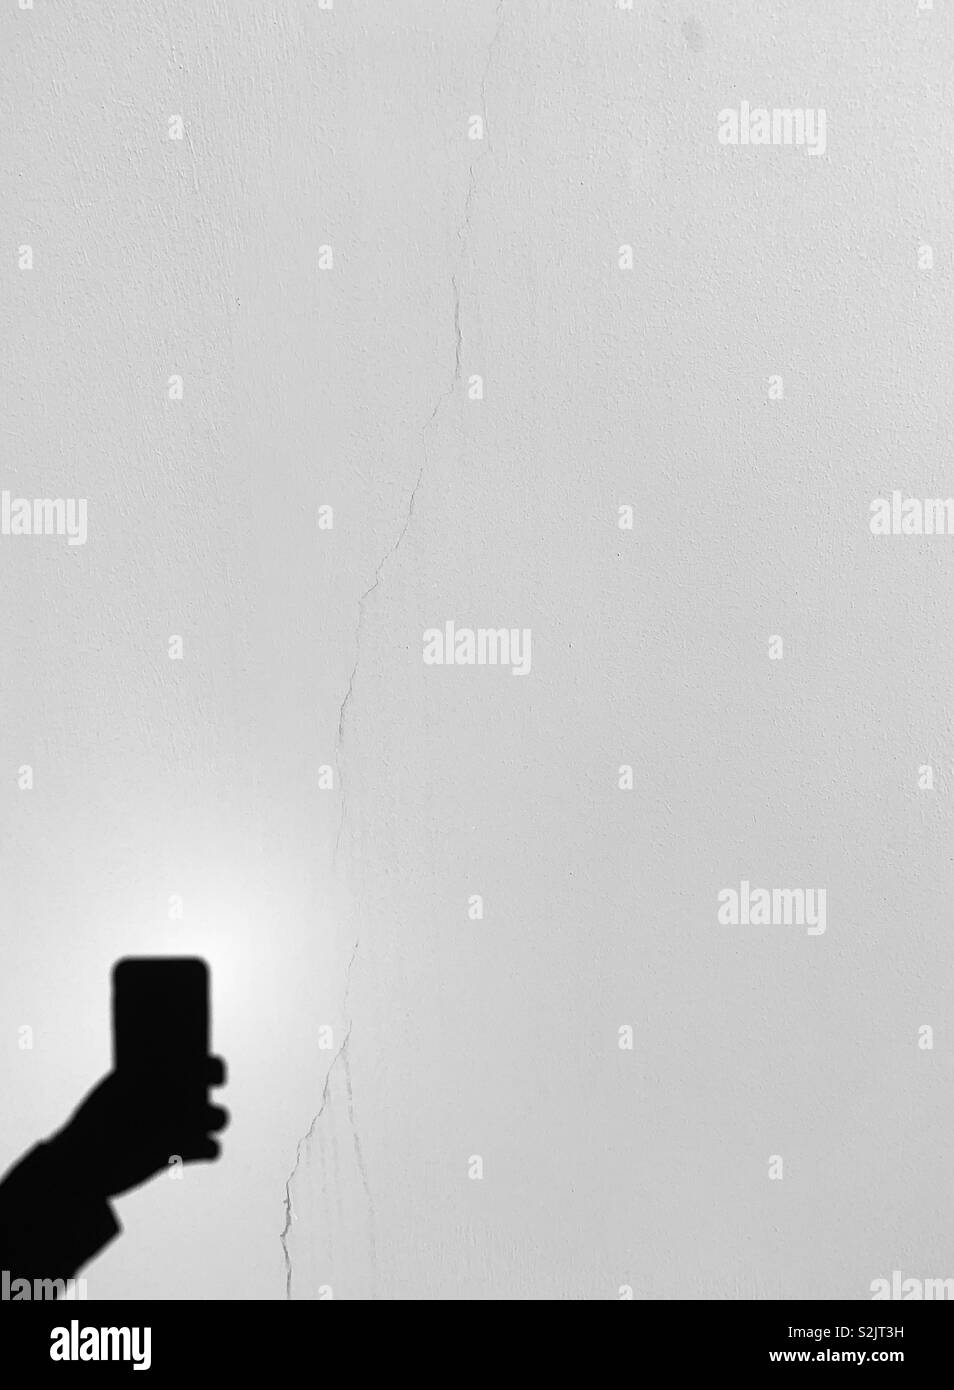 A shadow of a hand holding a cell phone. - Stock Image